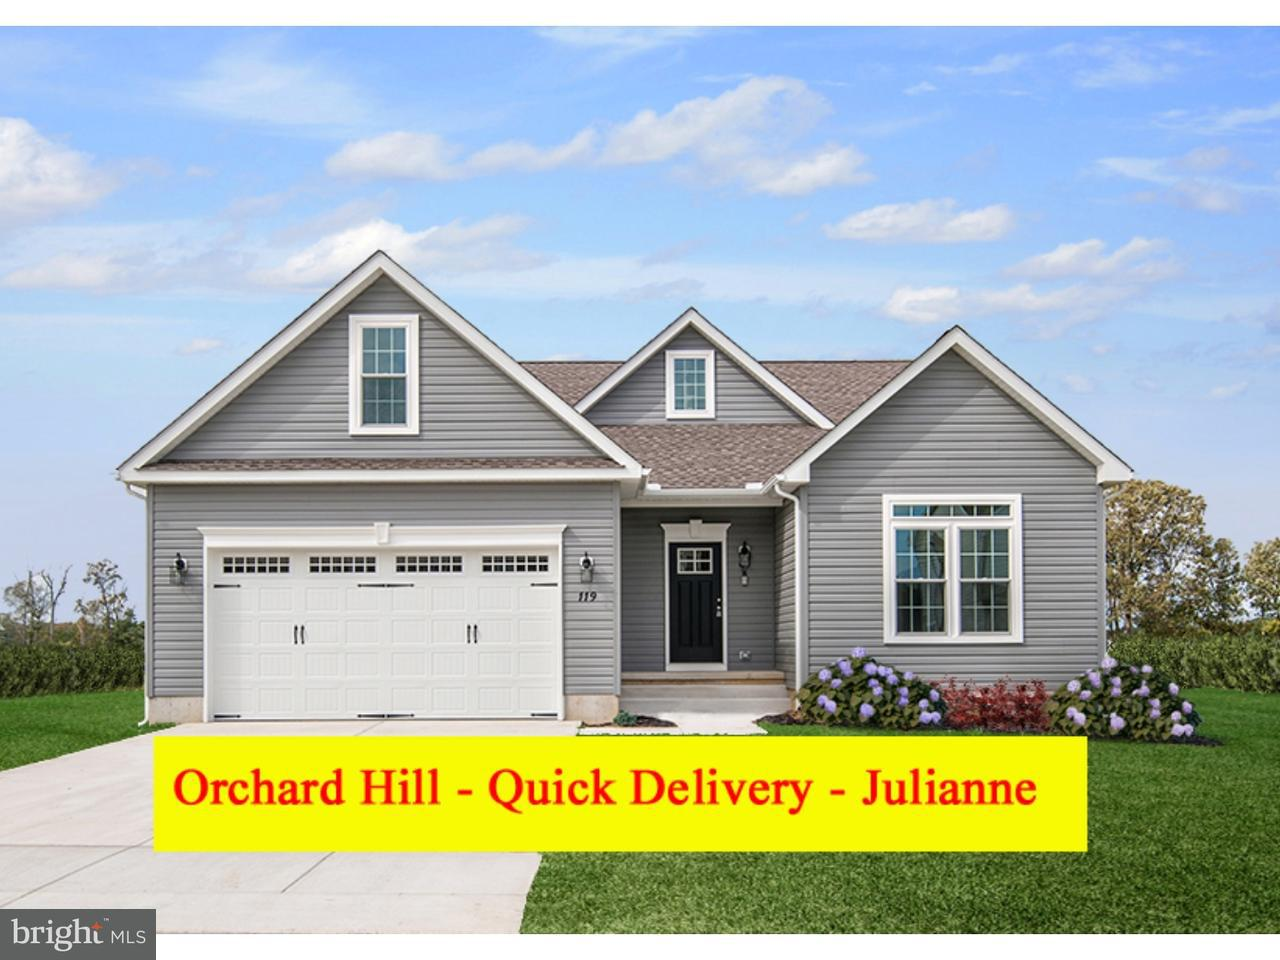 Single Family Home for Sale at 102 JUNE LN #LOT181 Milford, Delaware 19963 United States